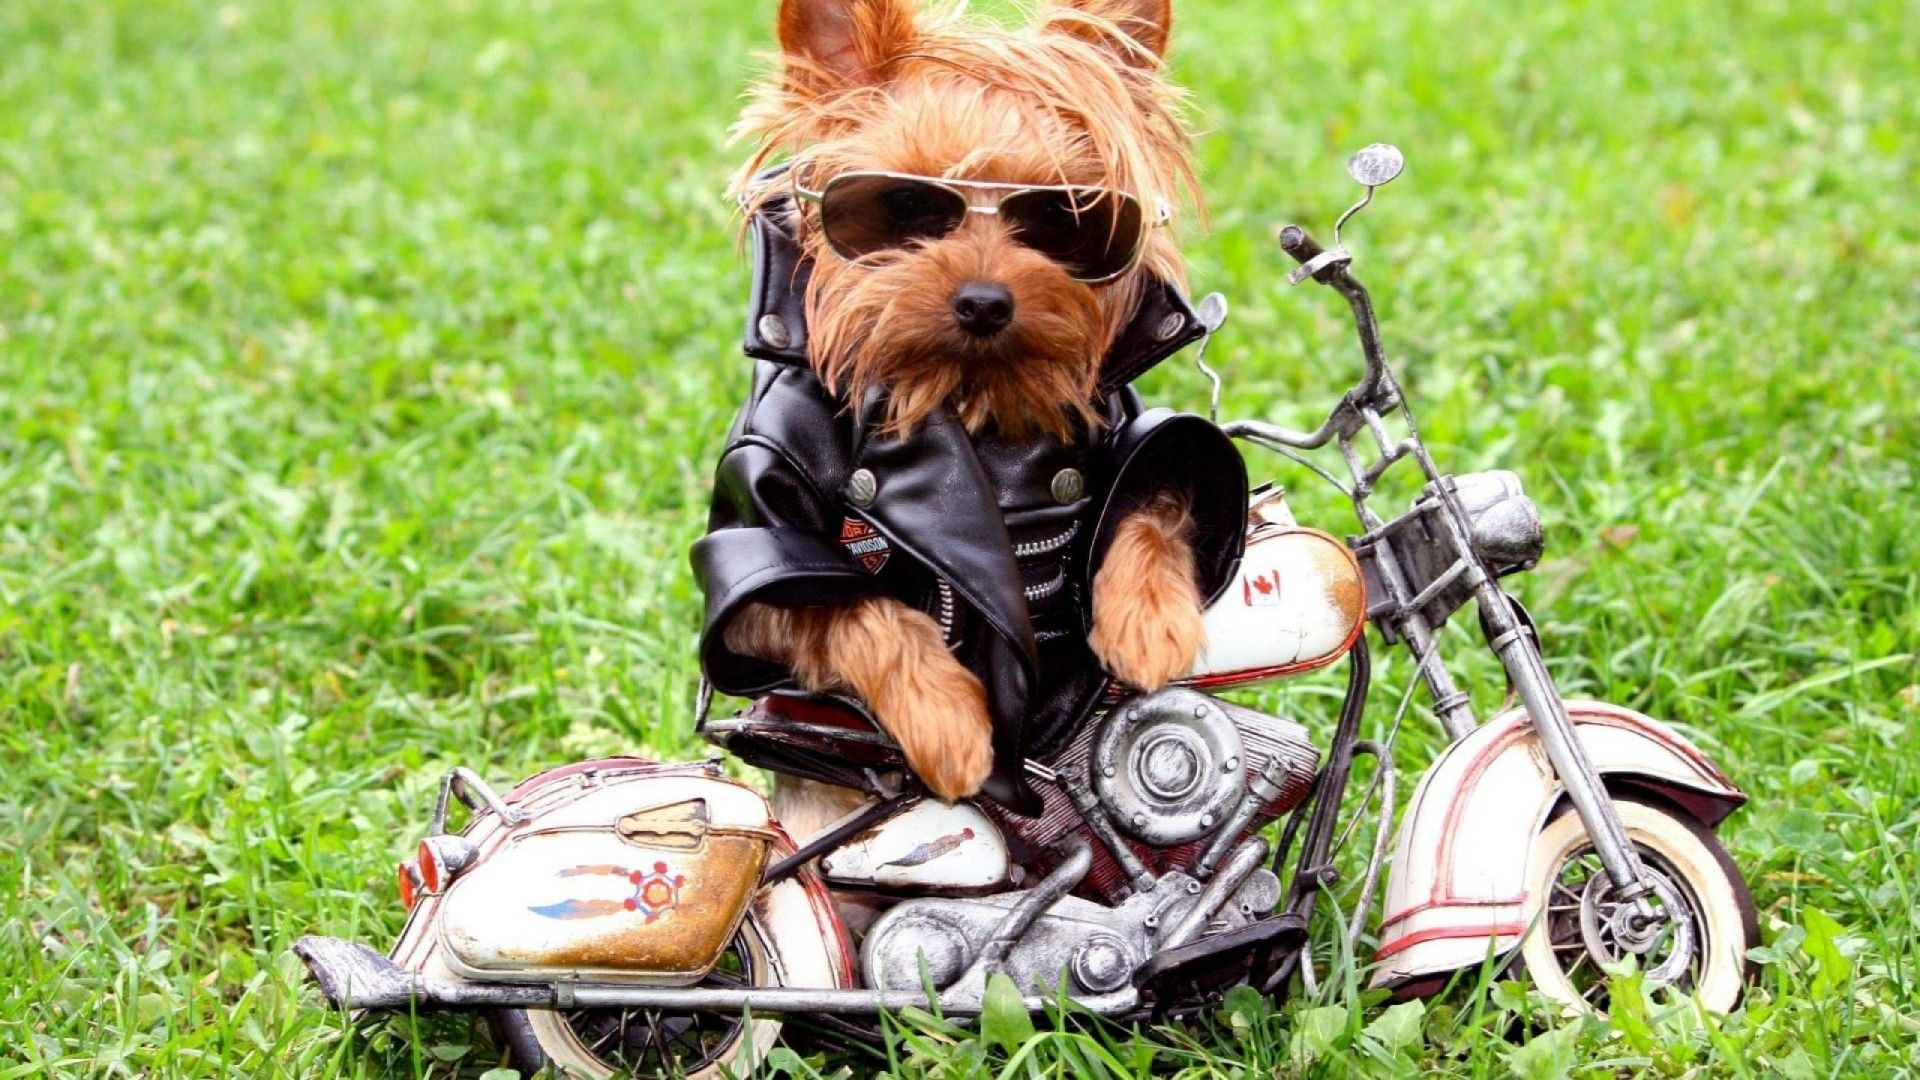 697c584143a11d66e14275dcd4a2711b funny dog on the motorcycle wallpaper hd wallpaper ideas for dogs